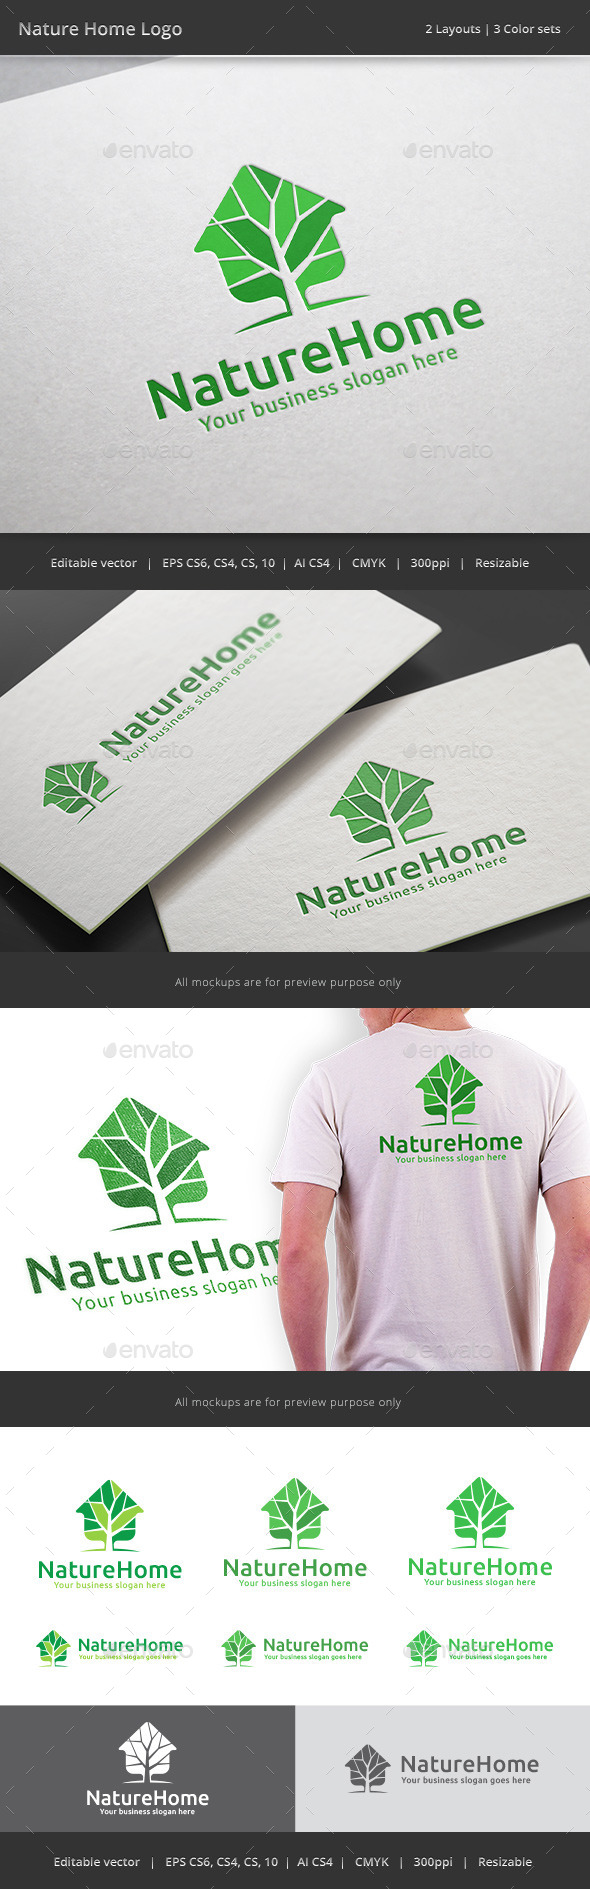 GraphicRiver Nature Home Logo 8821919